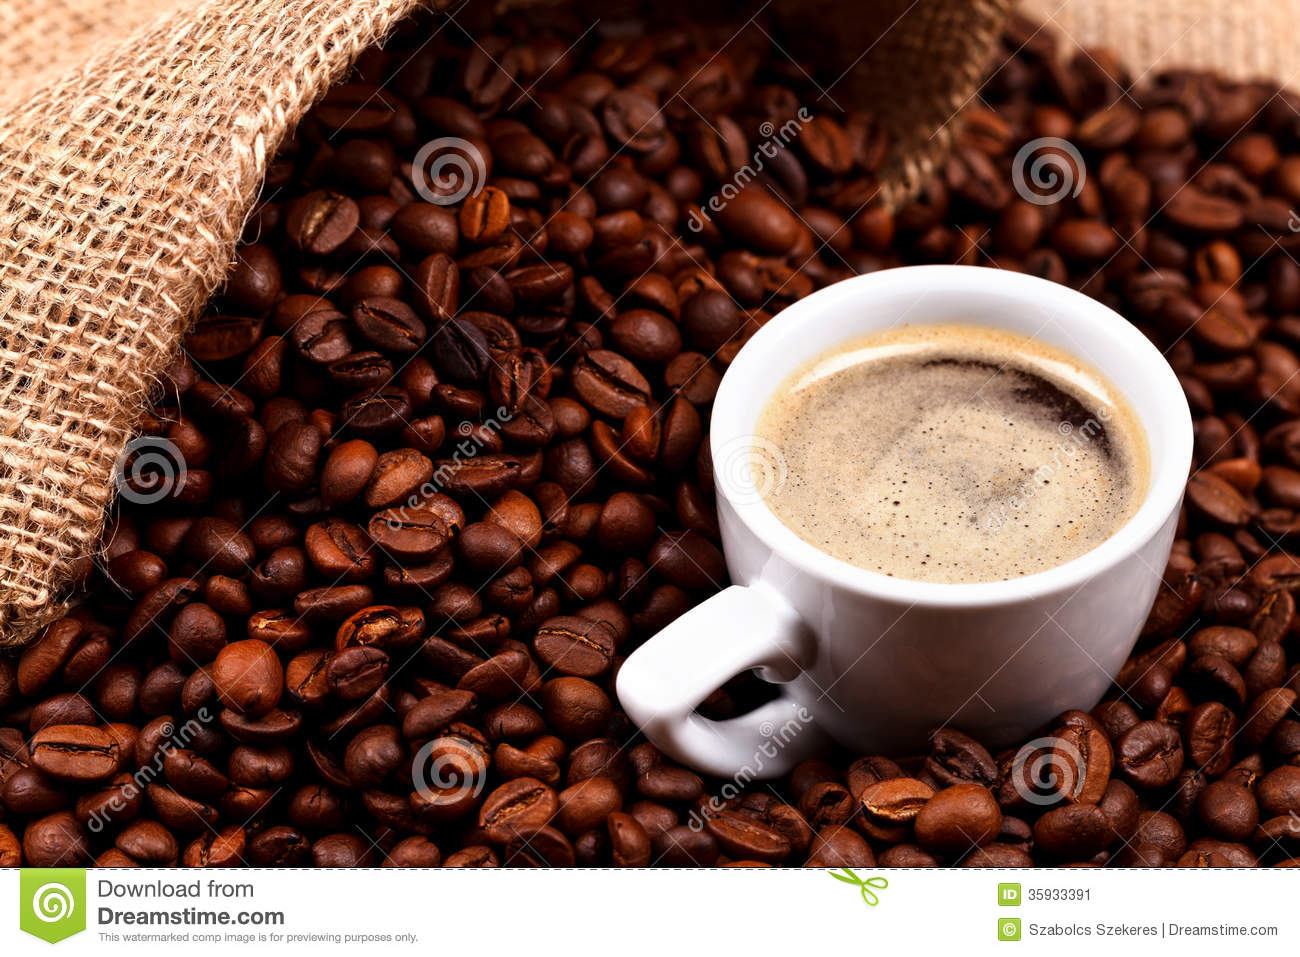 Coffee beans and a cup in burlap sack